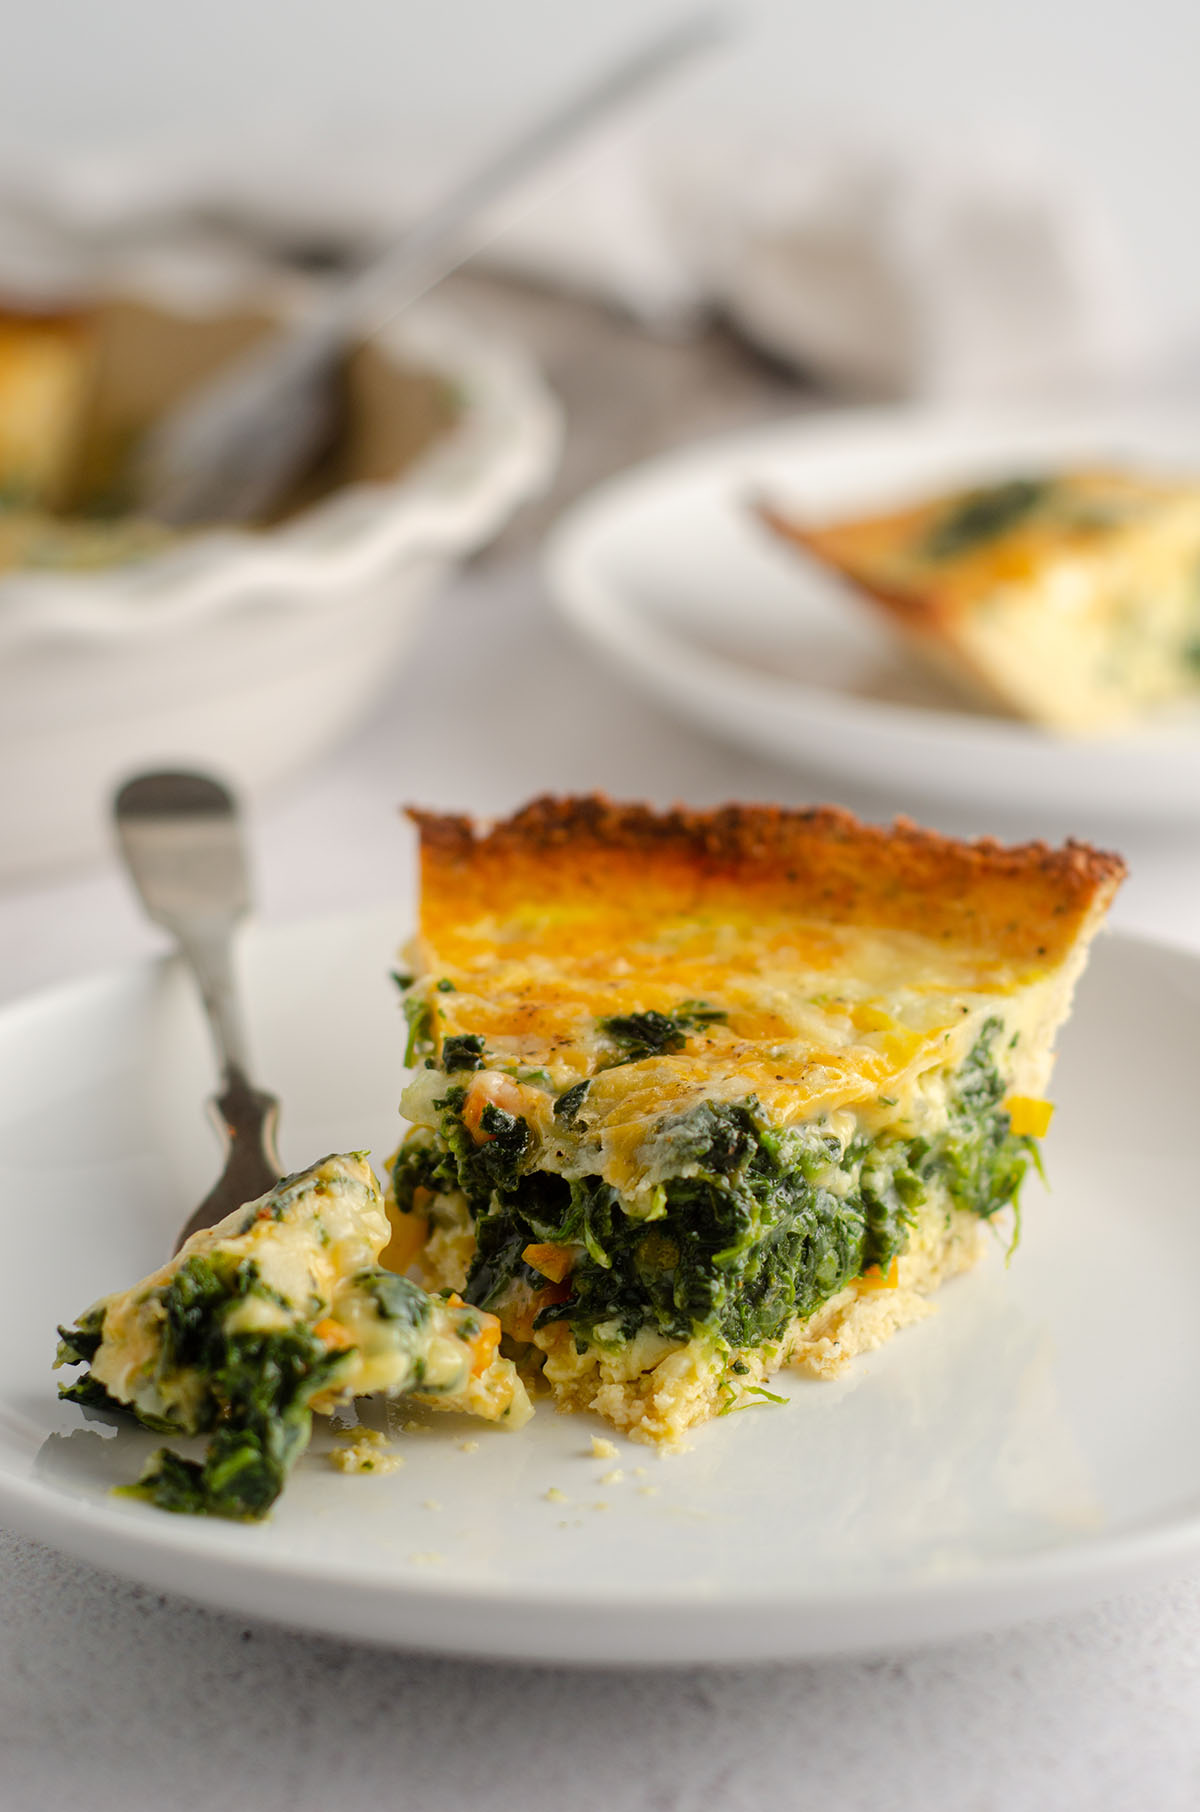 slice of cheesy vegetable quiche with cauliflower crust sitting on a plate